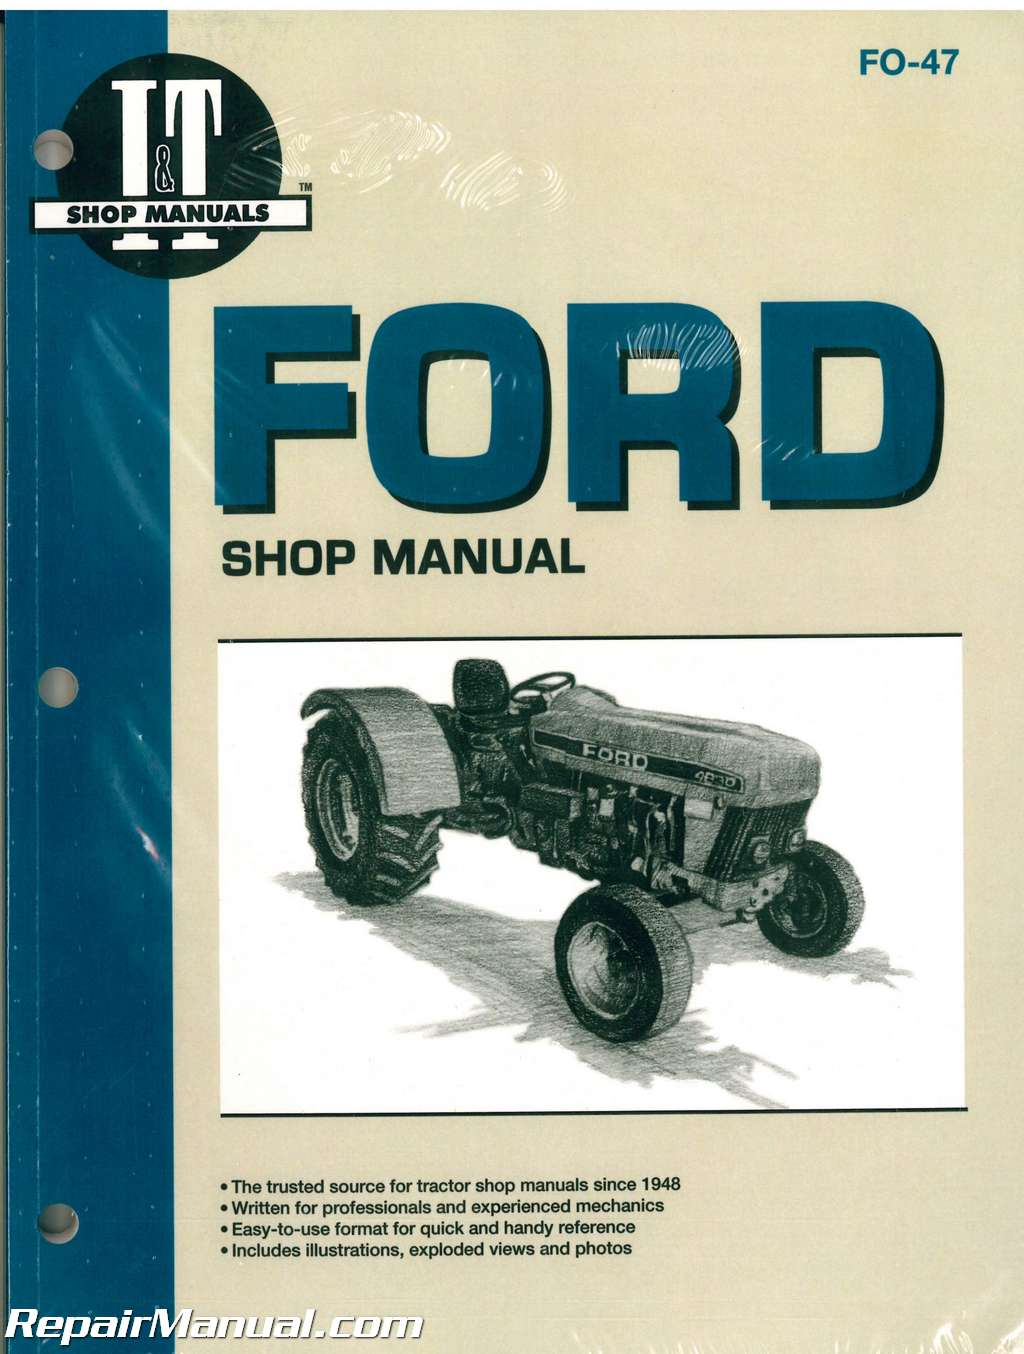 Ford 3230 Wiring Diagram Ask Answer The Car Electric Igniter 2 Automotivecircuit Circuit New Holland 3430 3930 4630 And 4830 Tractor Workshop Manual Rh Repairmanual Com Electronic Ignition Mirror